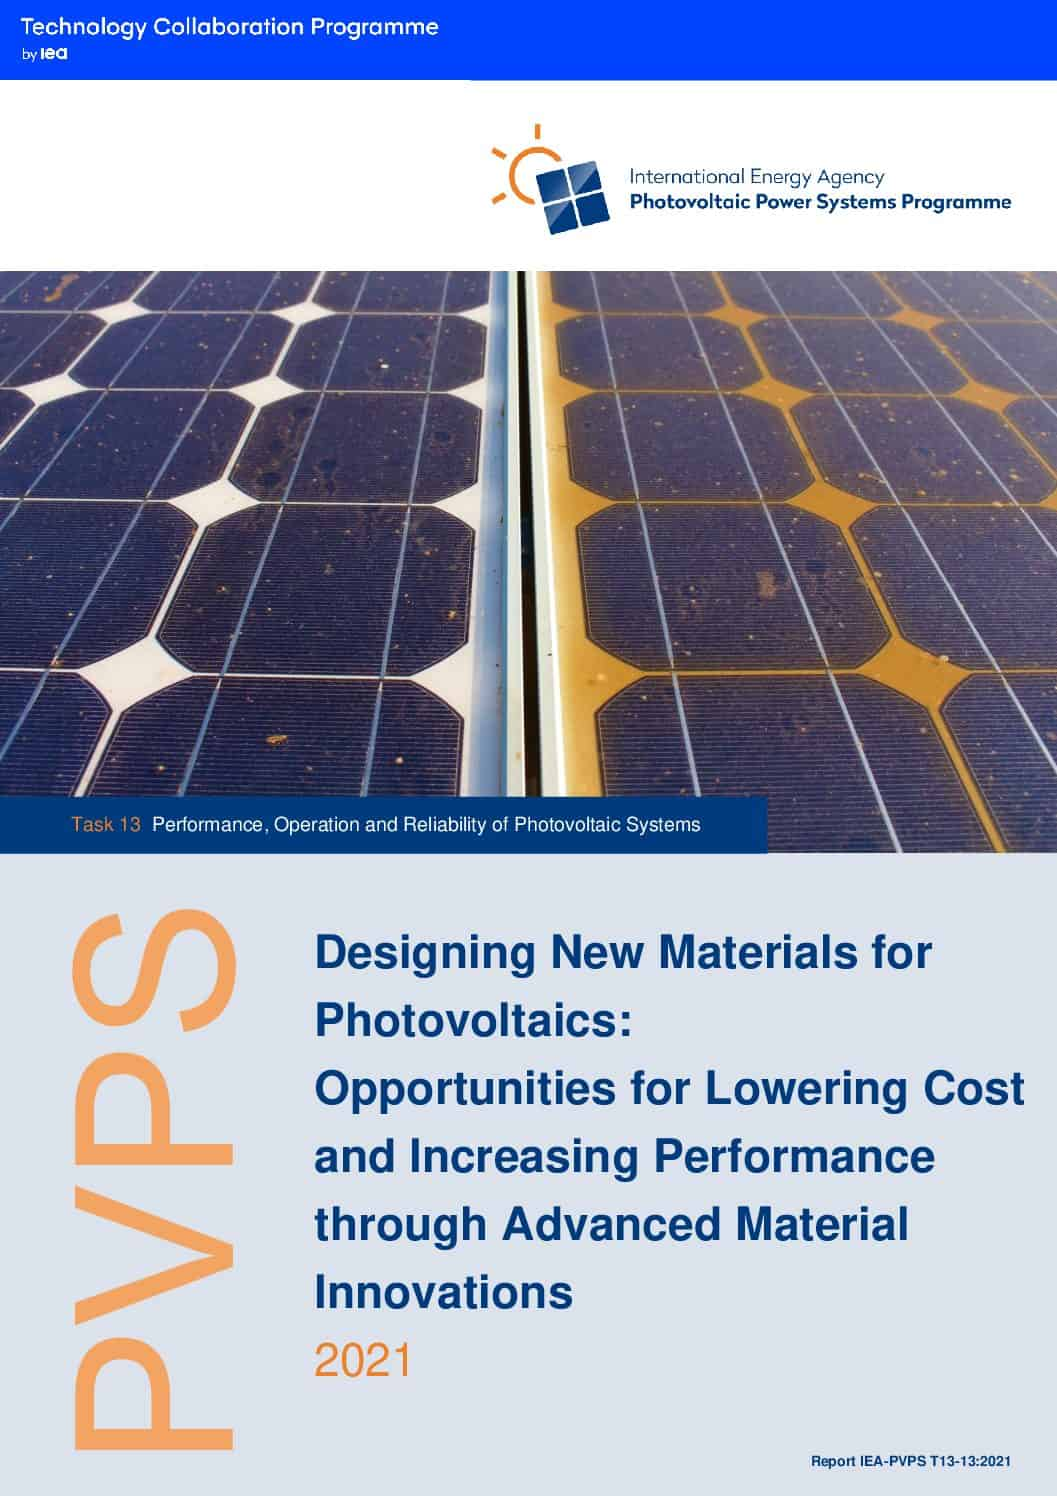 IEA-PVPS-T13-13_2021_Designing-new-materials-for-photovoltaics-report-pdf